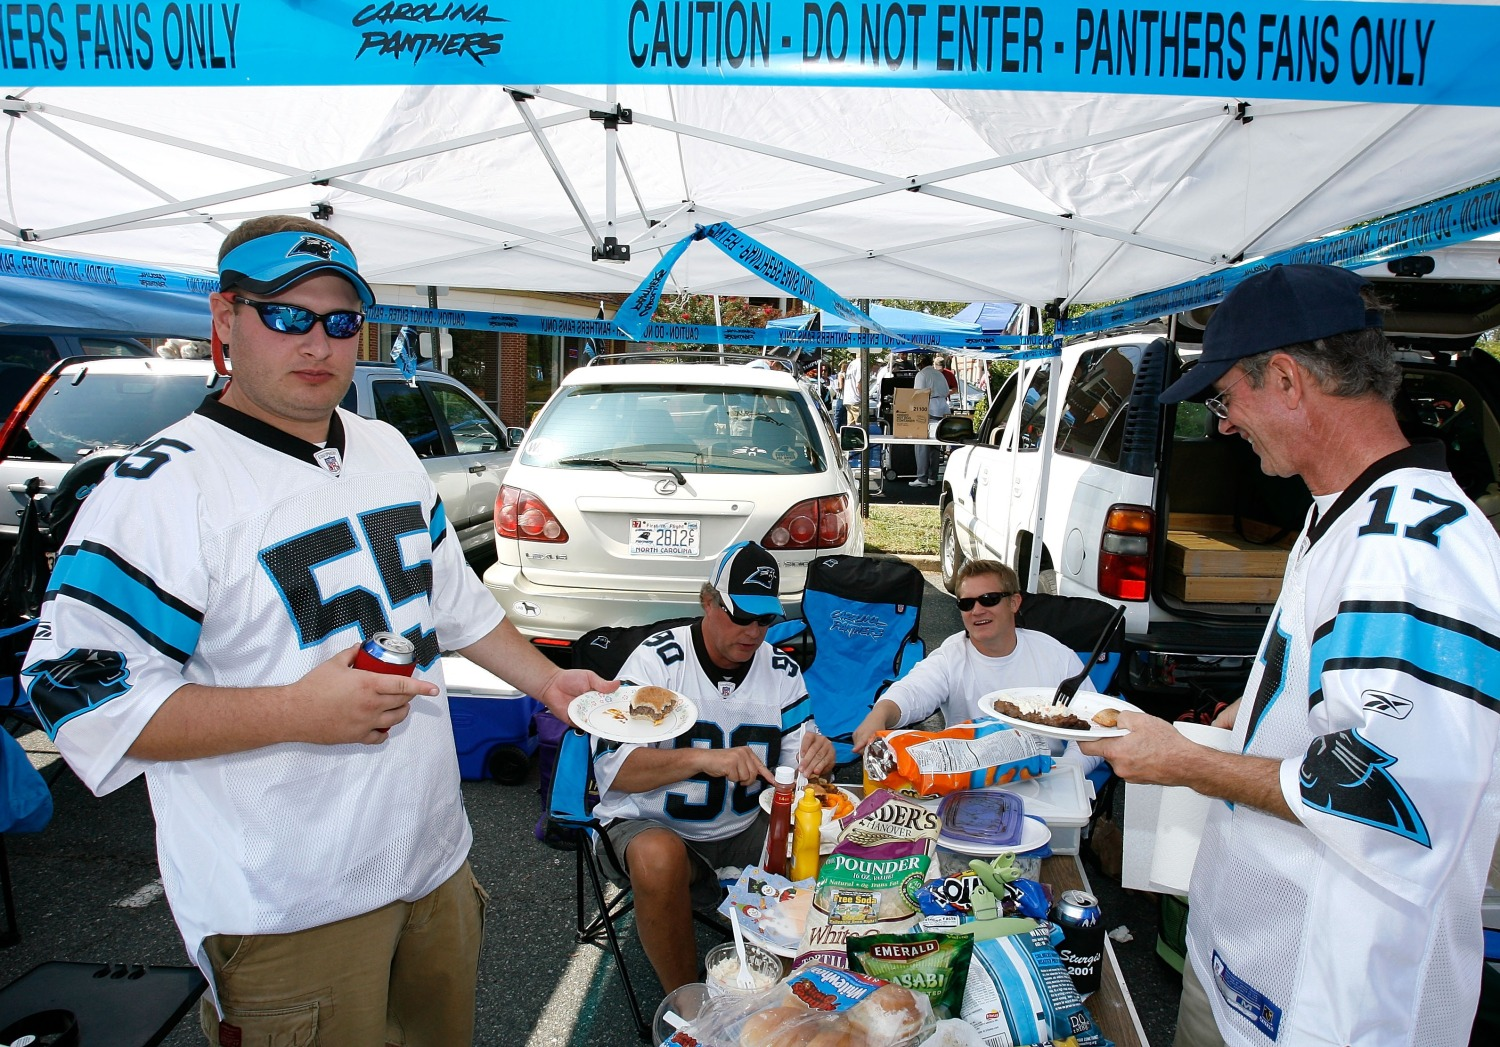 The 8 Best Types Of Grub For Your NFL Tailgate Party – CBS Seattle